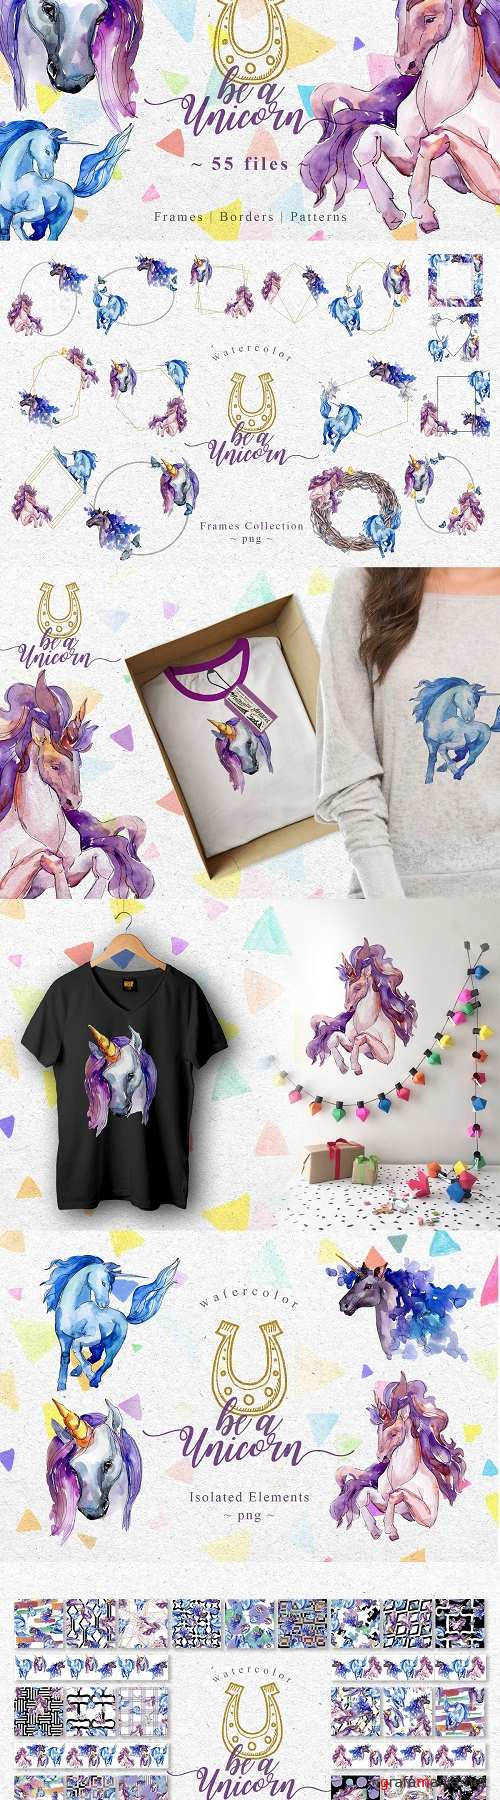 Unicorn violet Watercolor png - 3349004